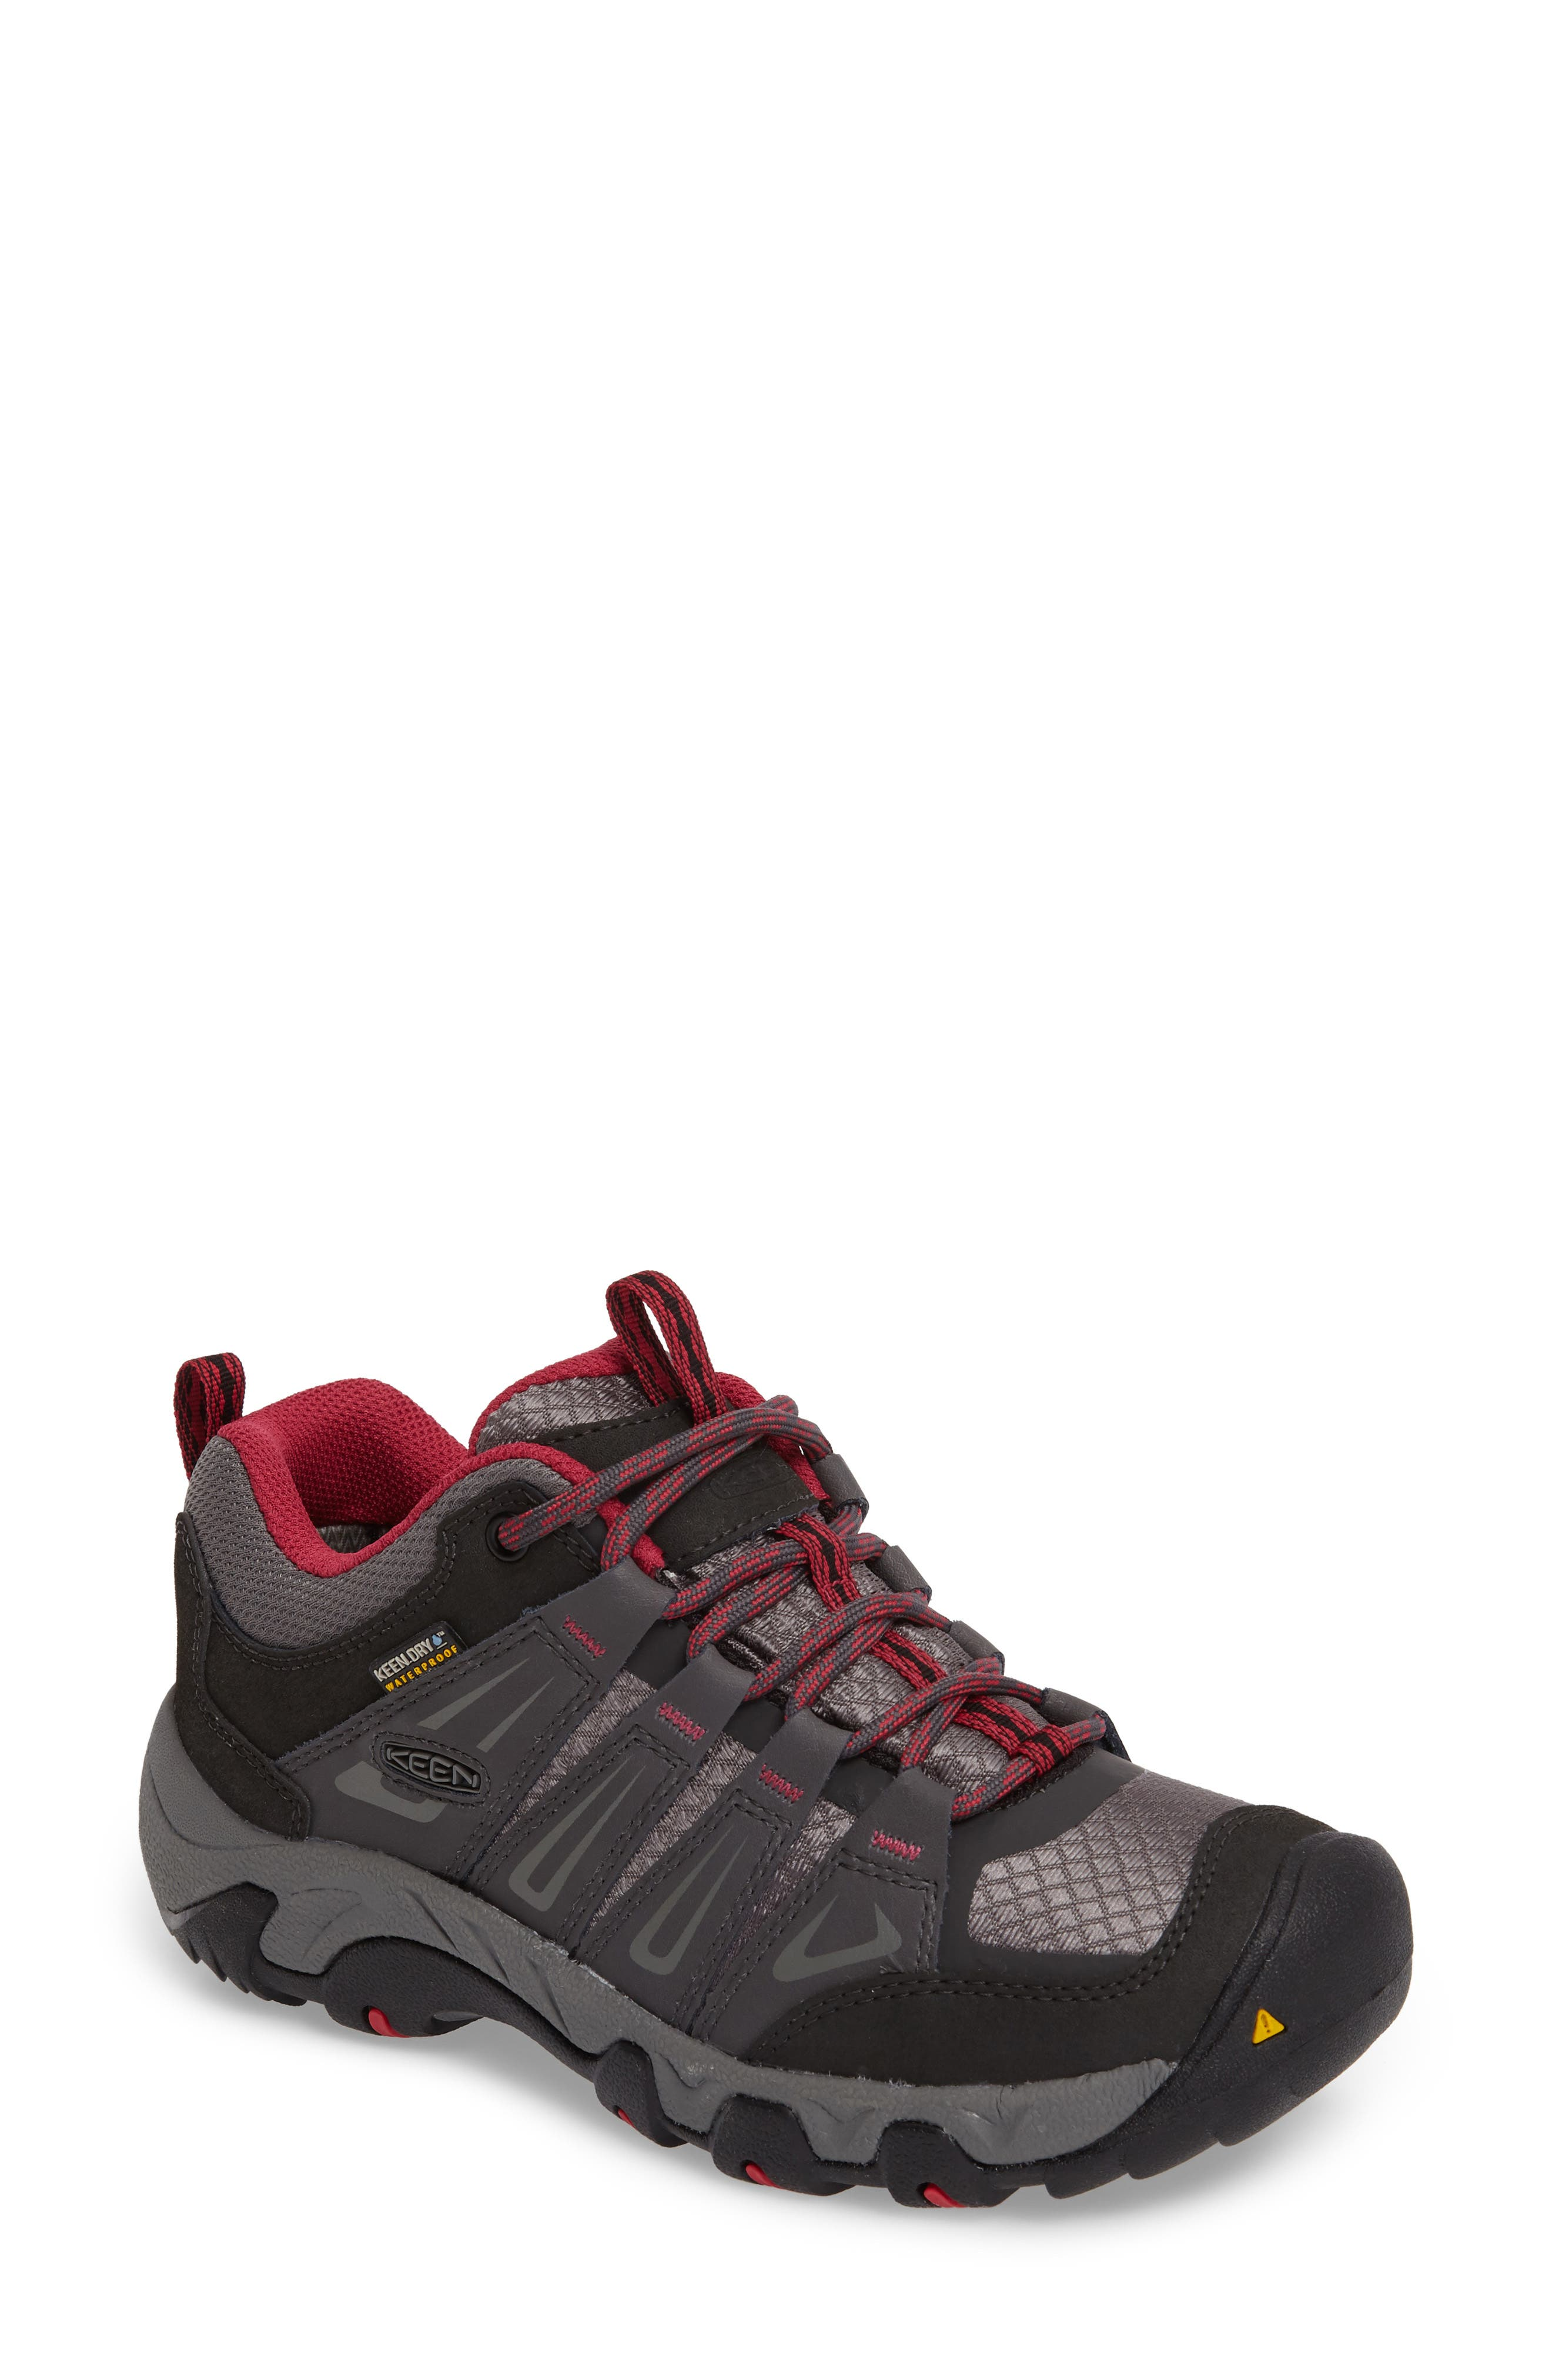 KEEN Oakridge Waterproof Hiking Shoe